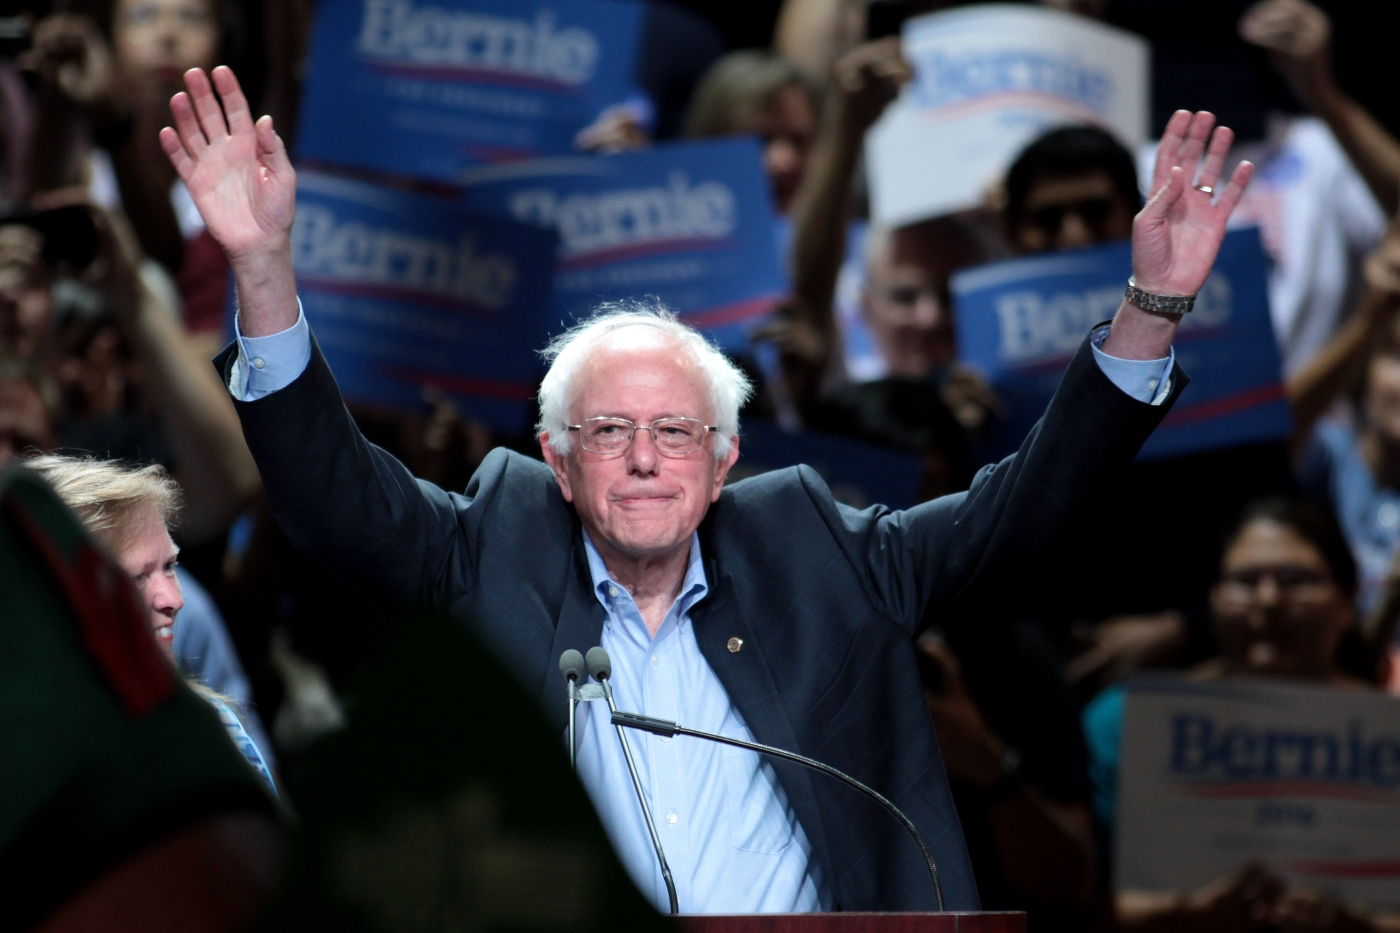 bernie sanders phoenix arizona speech | the lonely tribalist